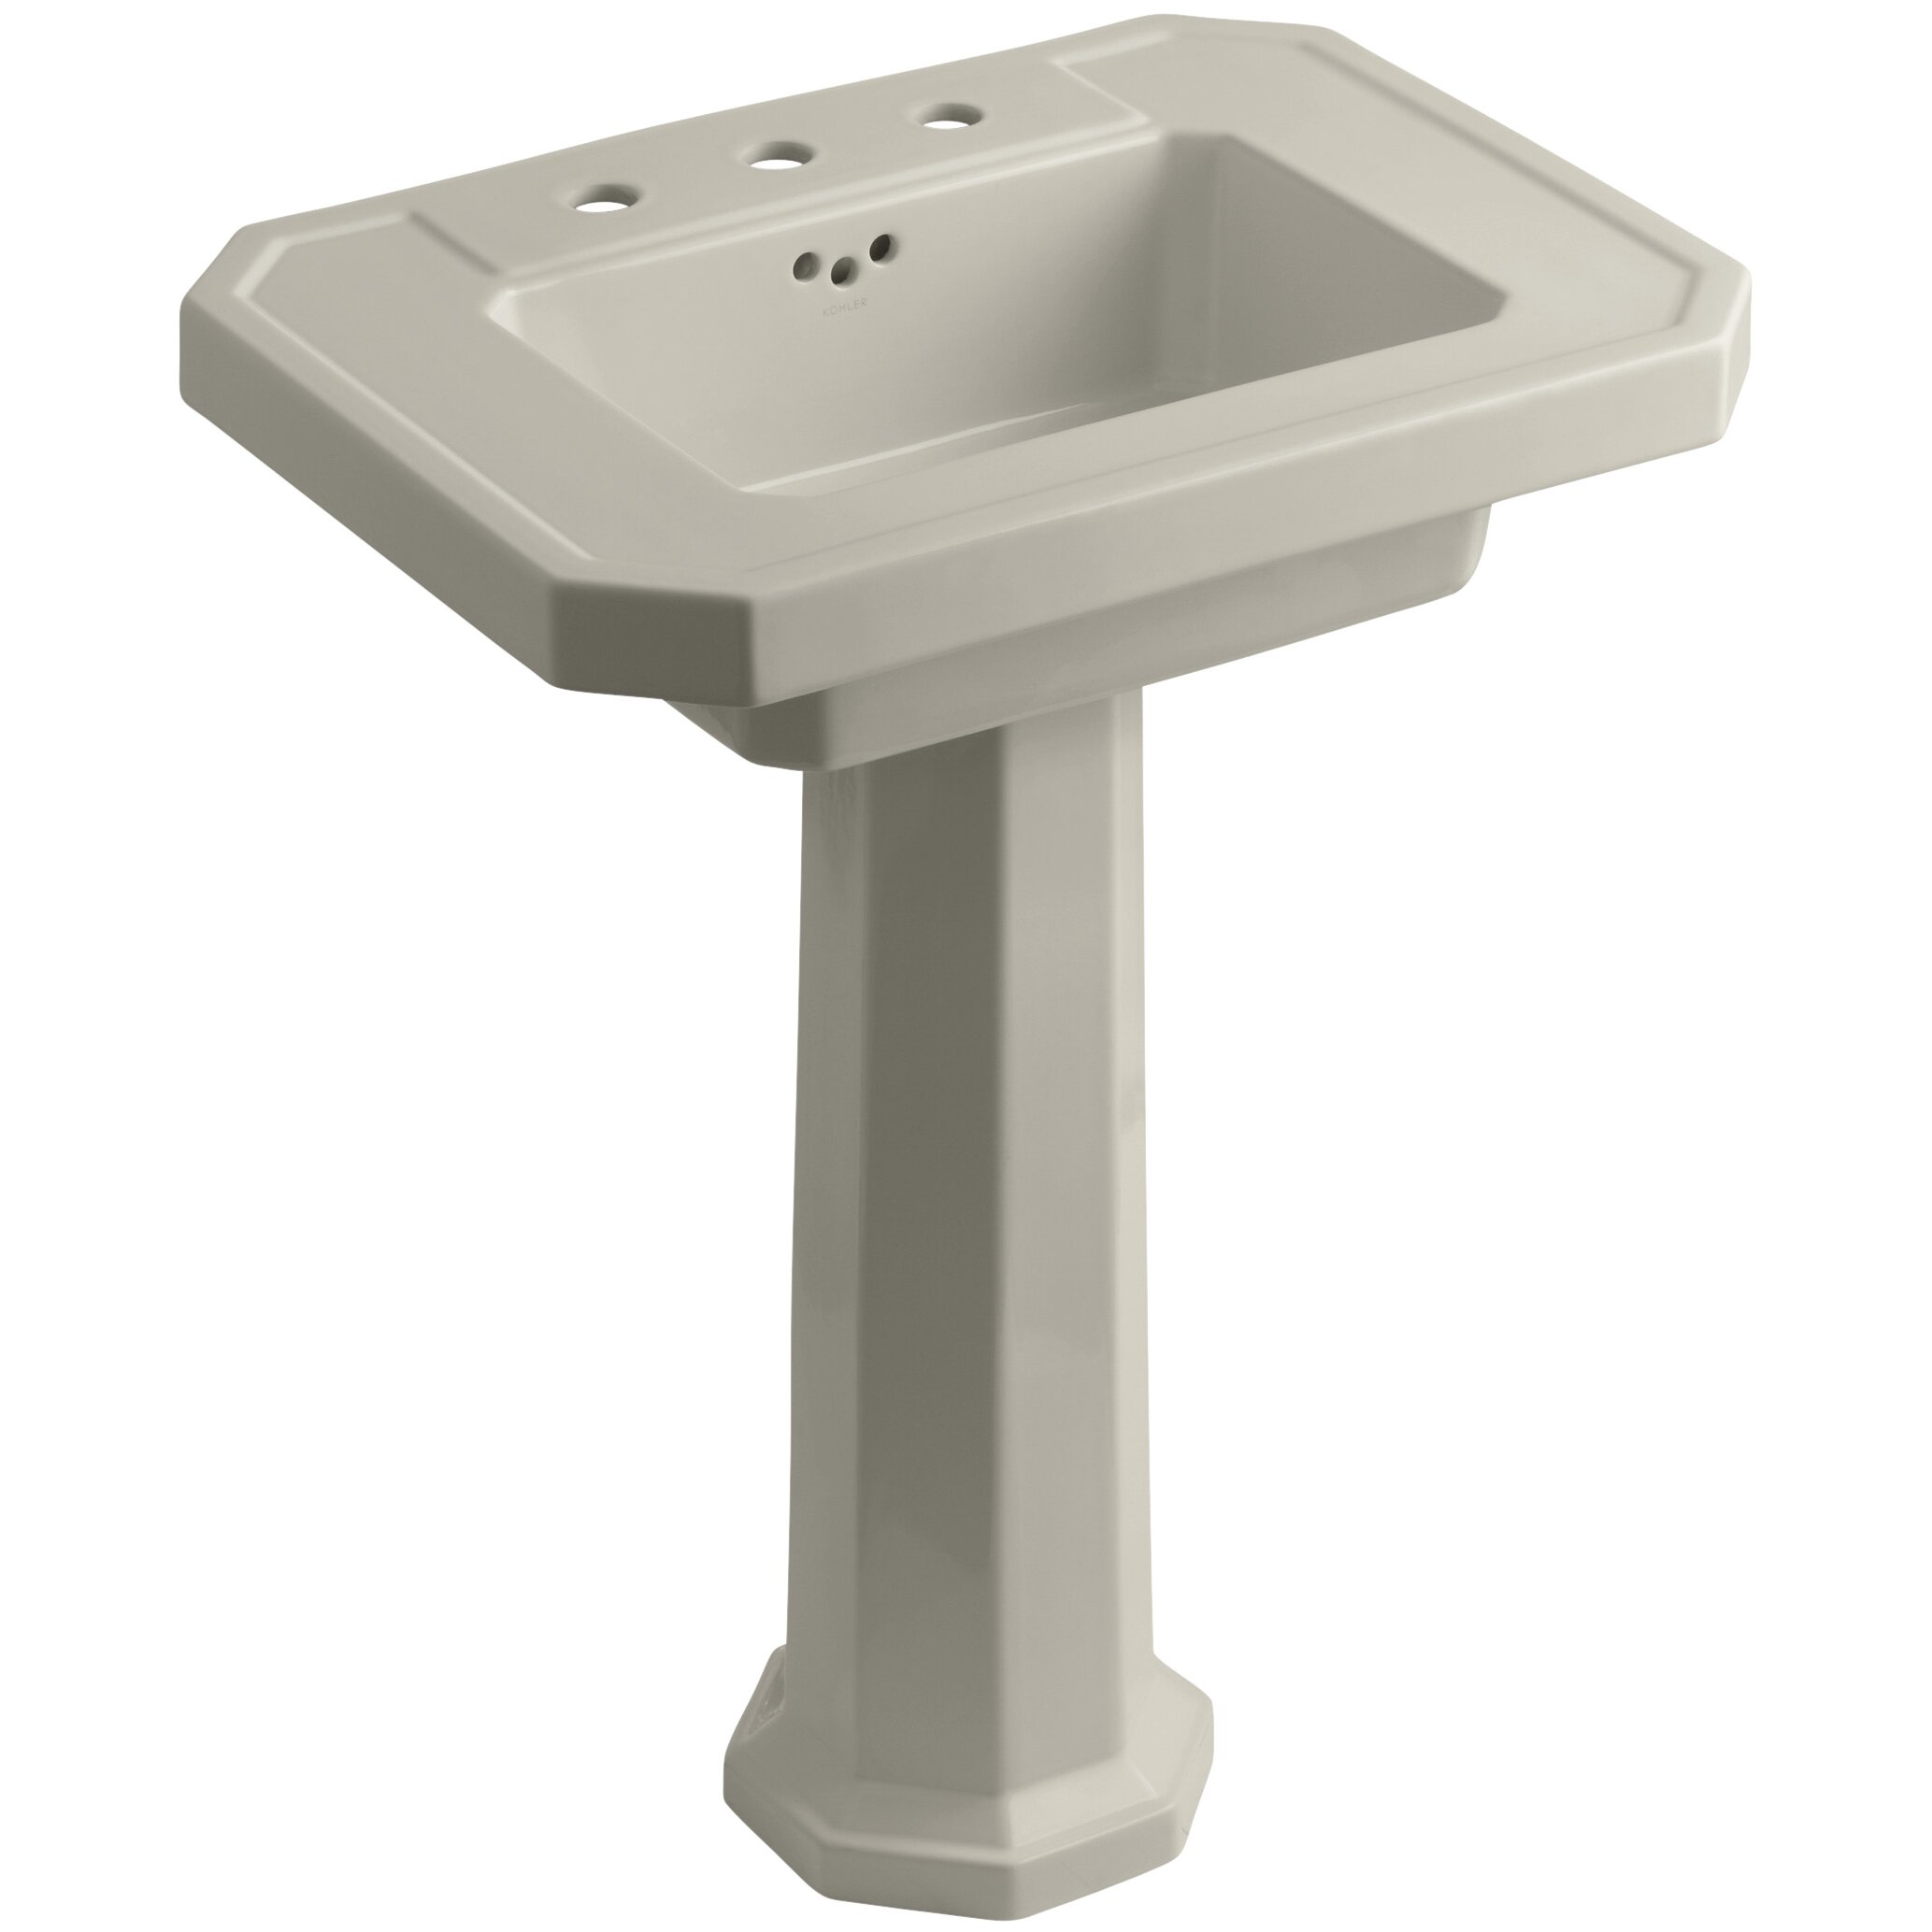 Kohler Kathryn Pedestal Bathroom Sink. Kohler Kathryn Pedestal Bathroom Sink   Reviews   Wayfair